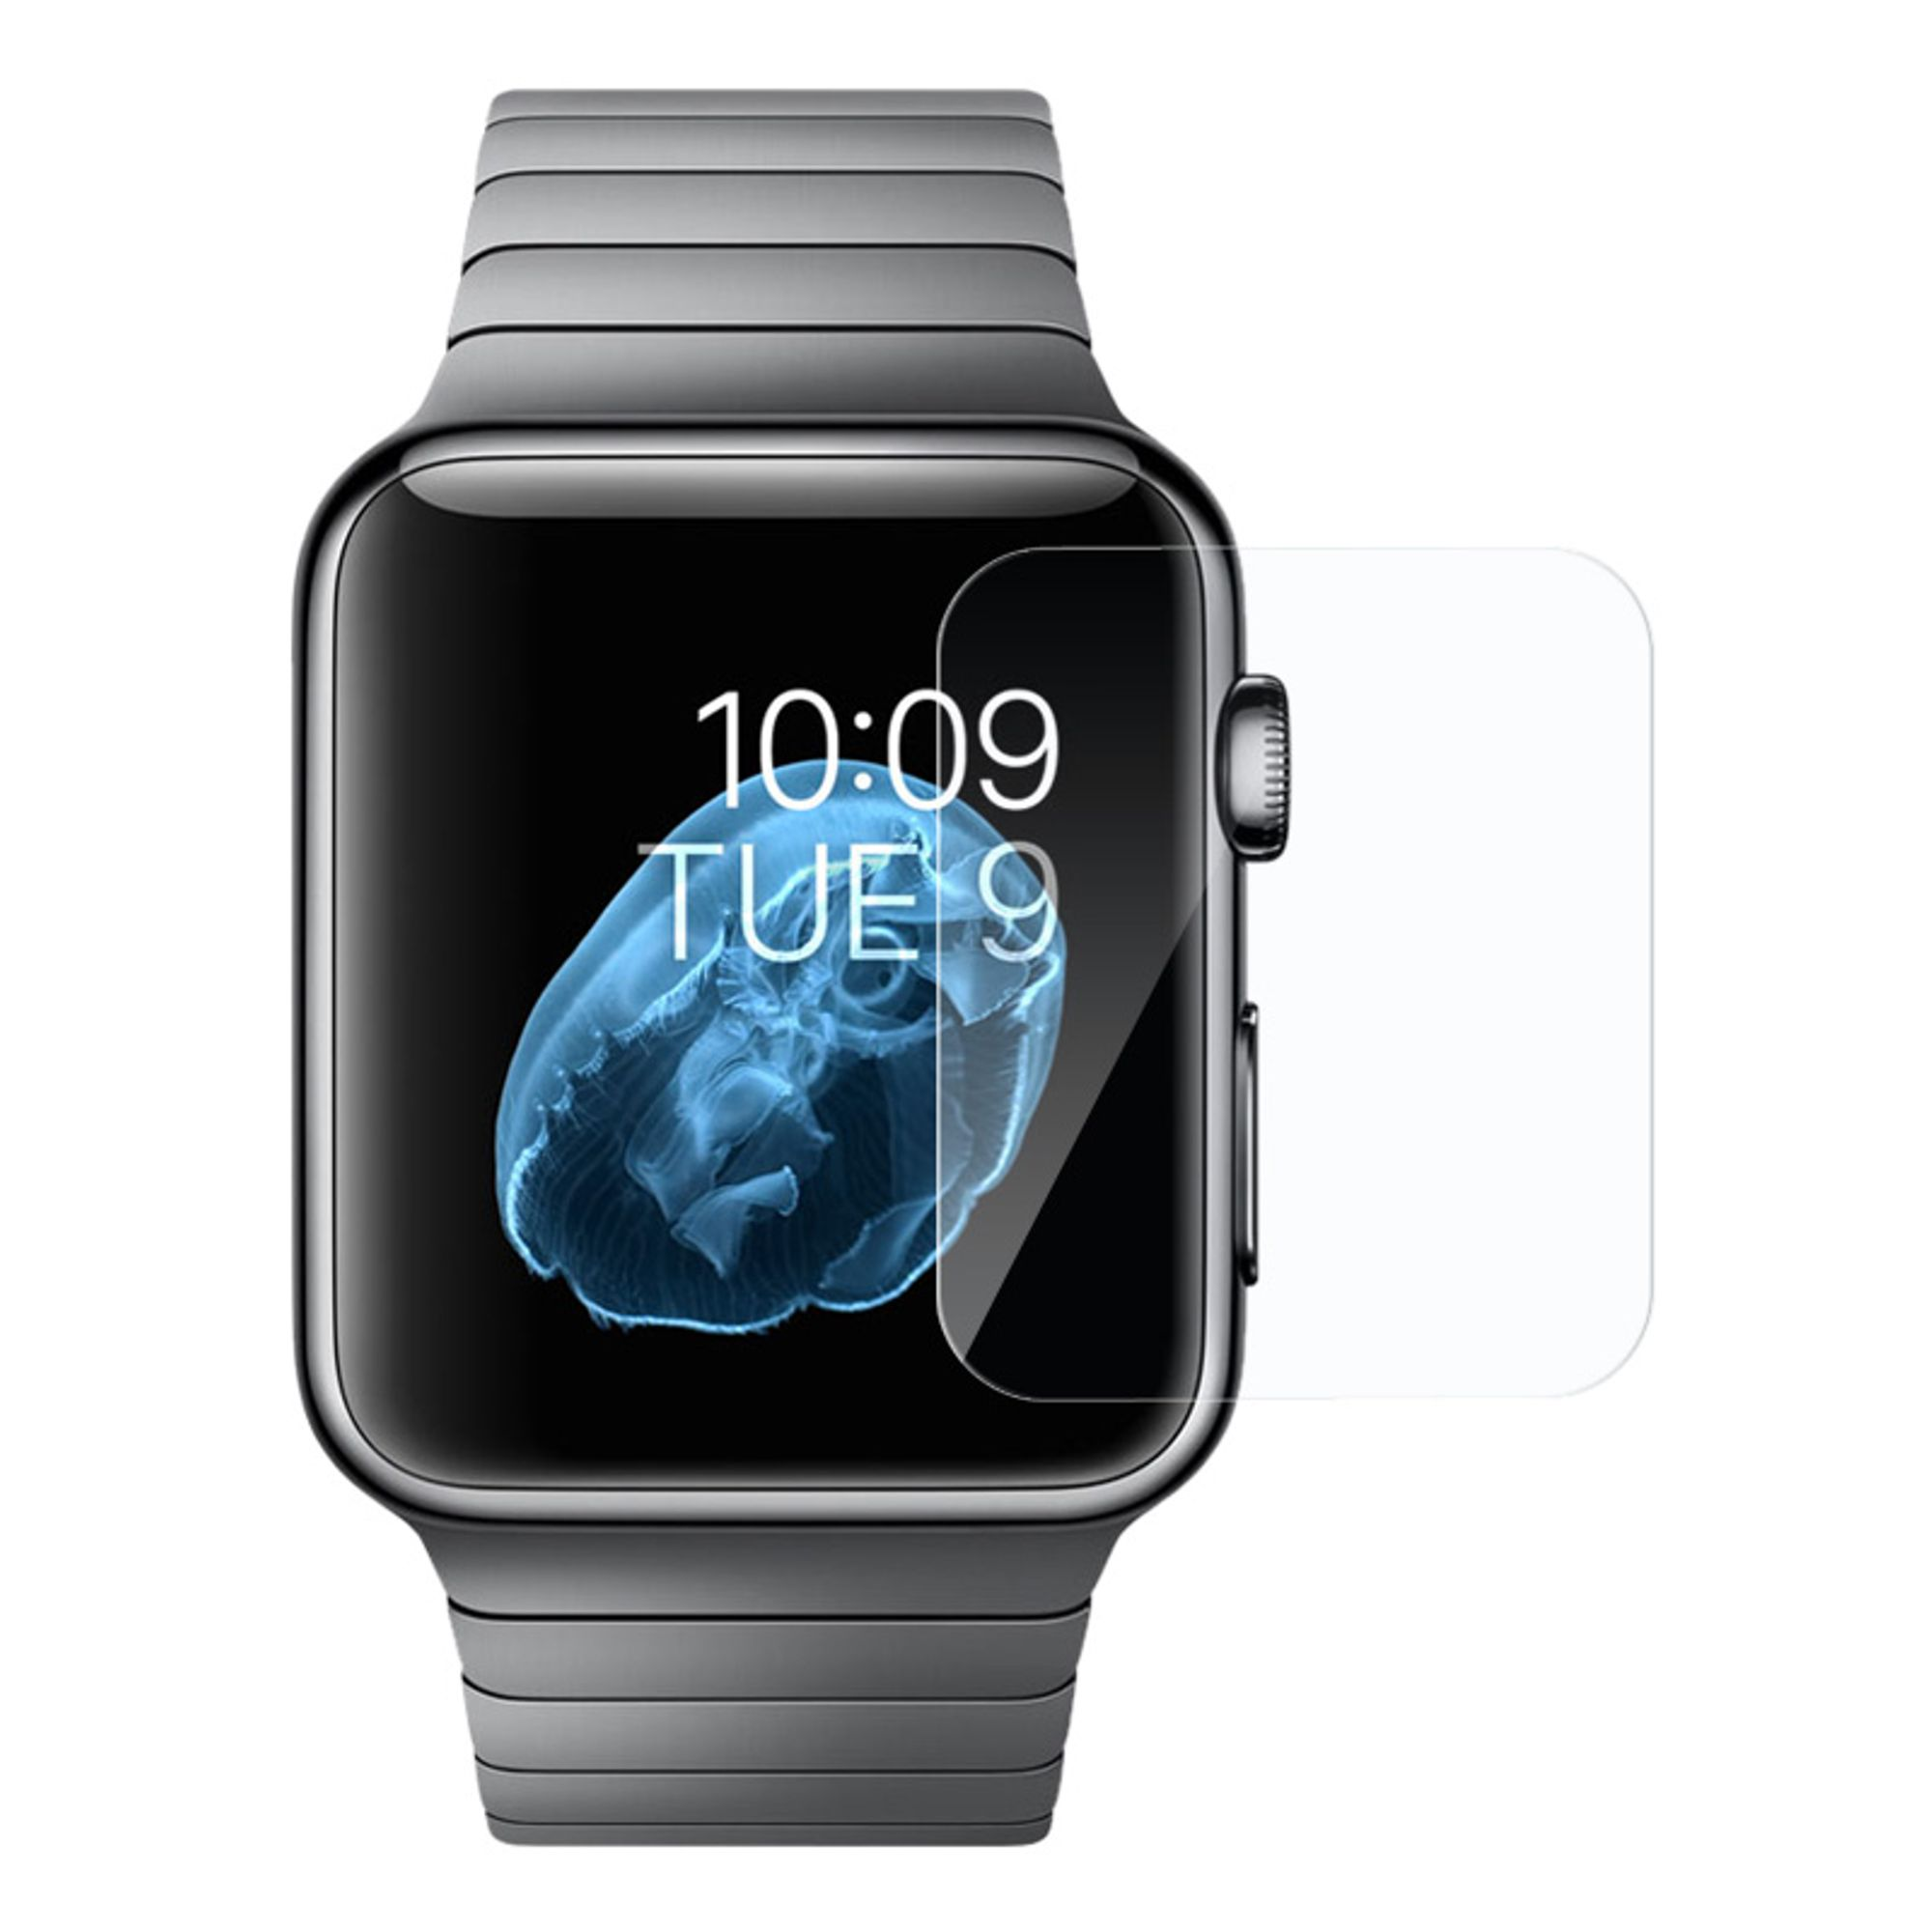 Apple Watch Series 2 42mm Glass Screen Protector, by Insten Clear Tempered Glass LCD Screen Protector Shield Guard Film For Apple Watch Edition Series 2 42mm Watch Series 1 42mm Watch Series 2 42mm